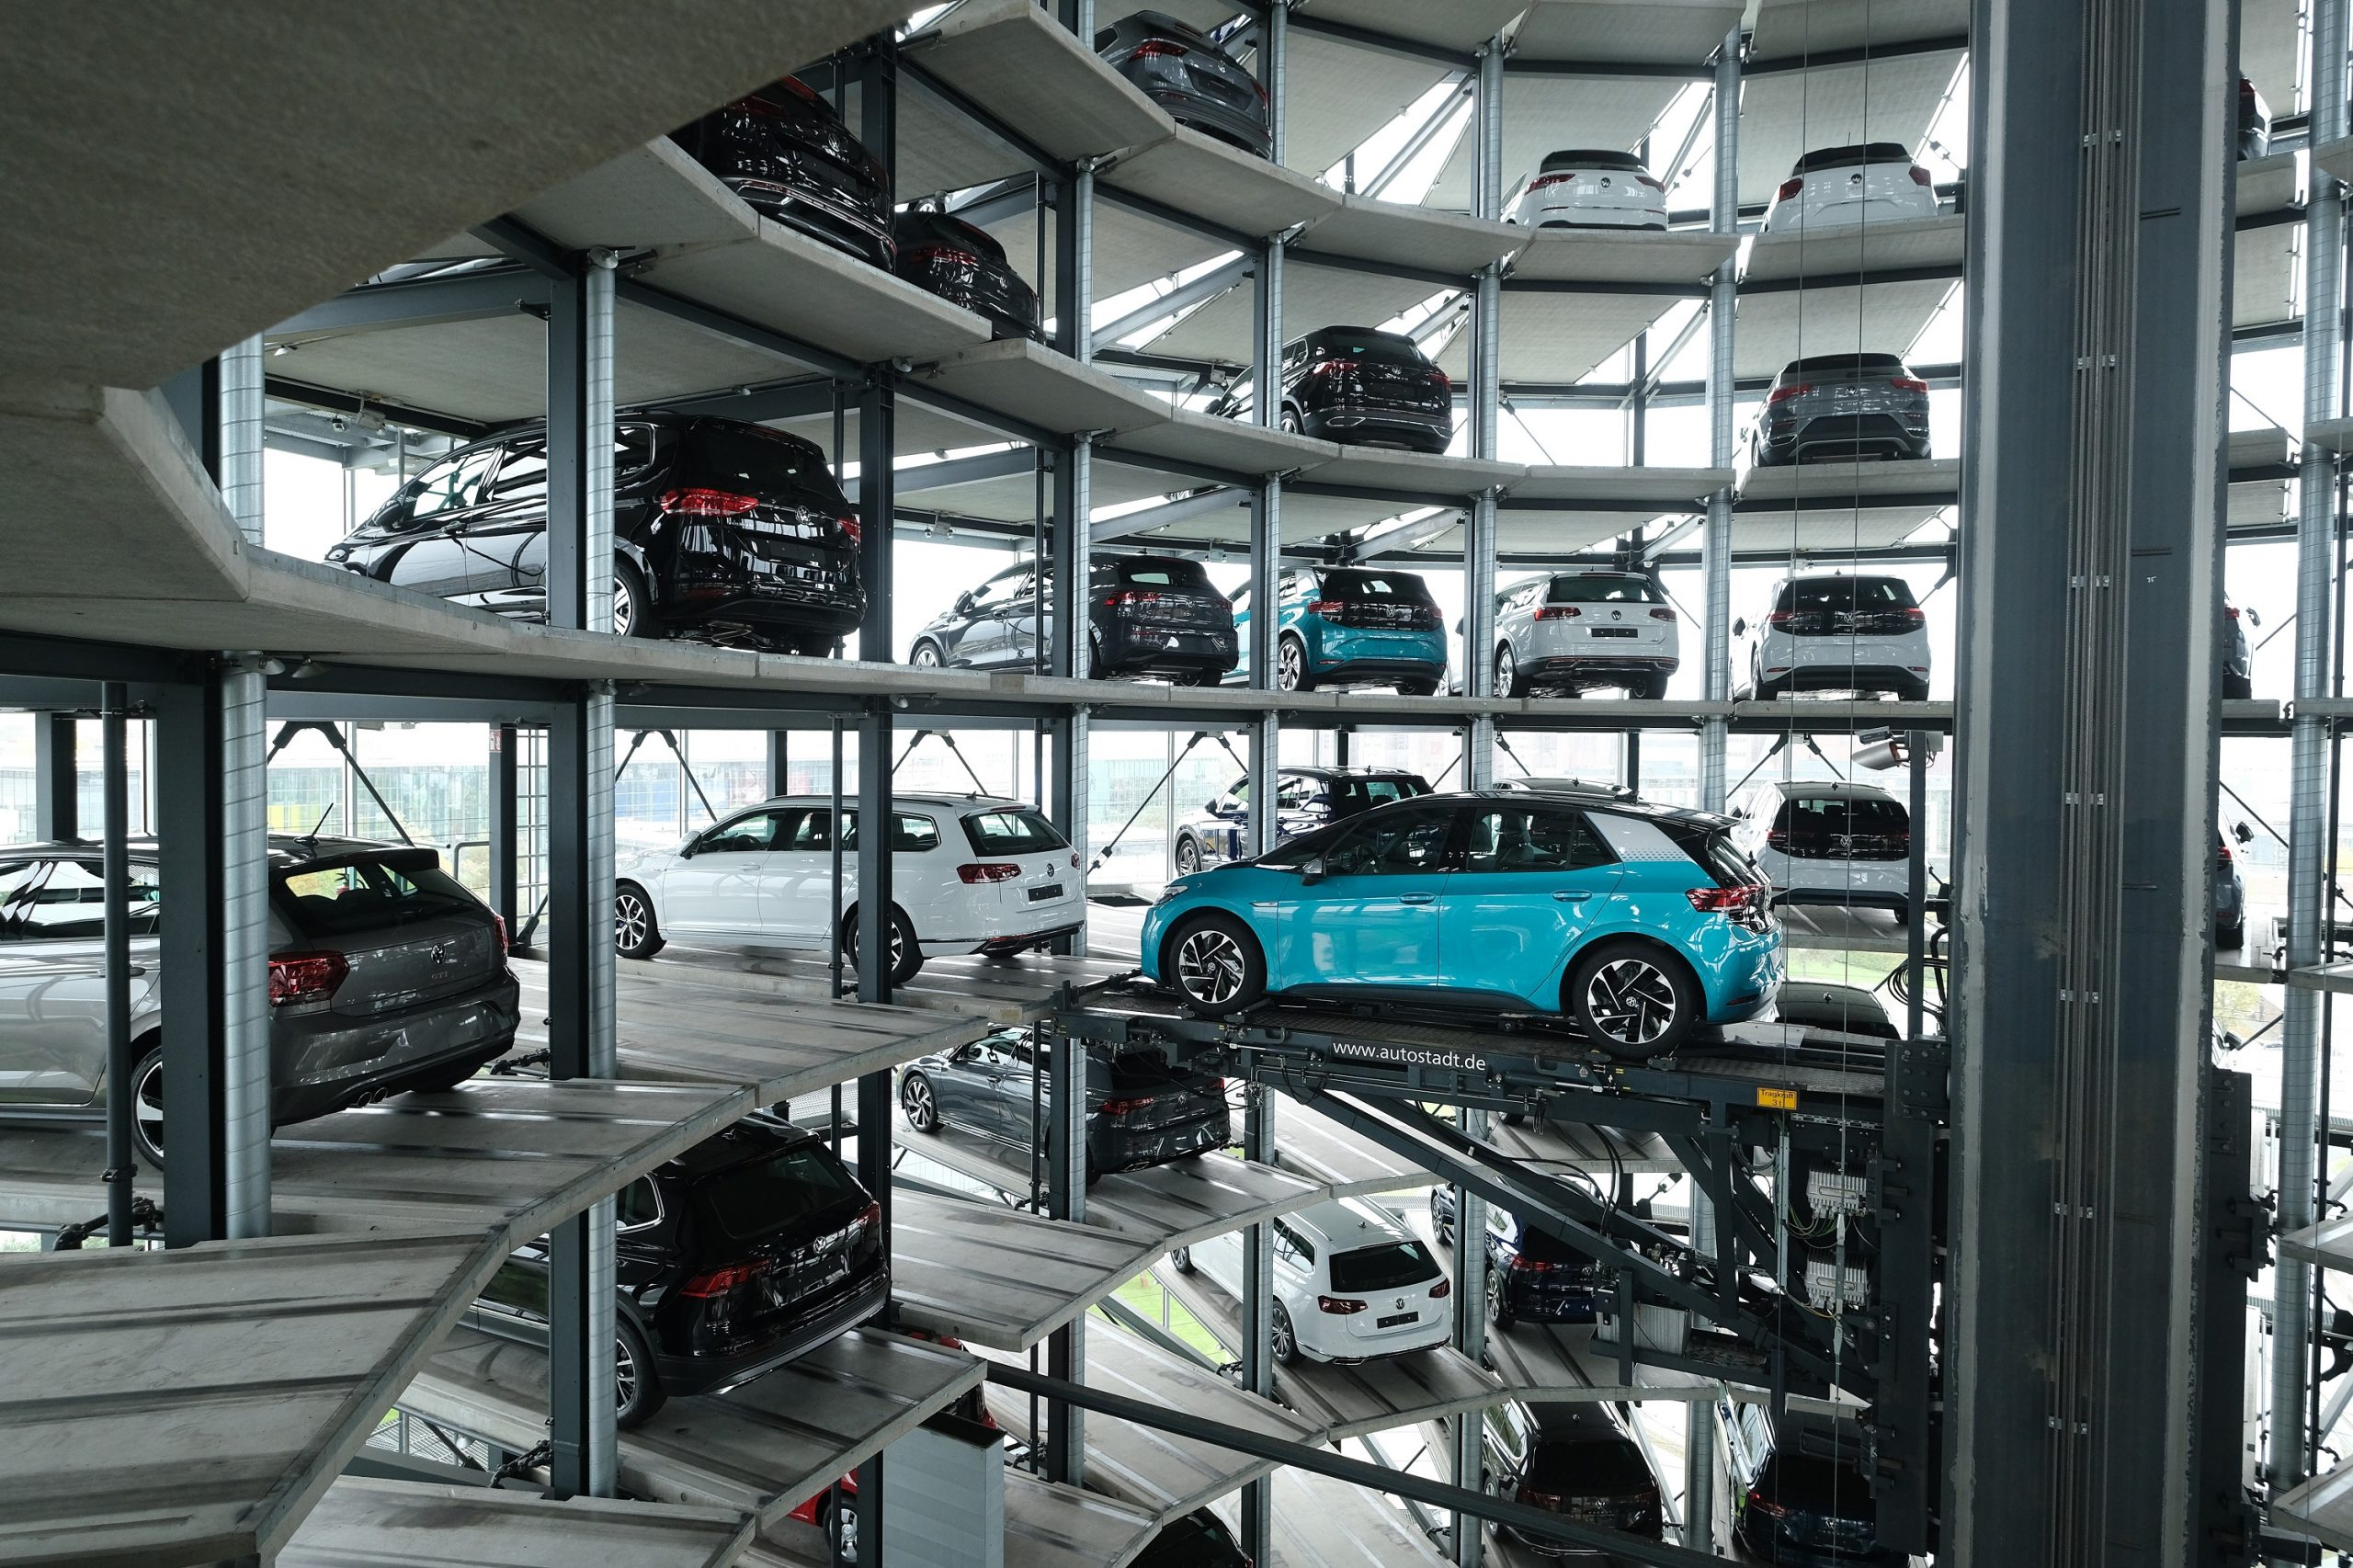 The Volkswagen Autostadt, basically a car elevator with millions of dollars of cars in it.